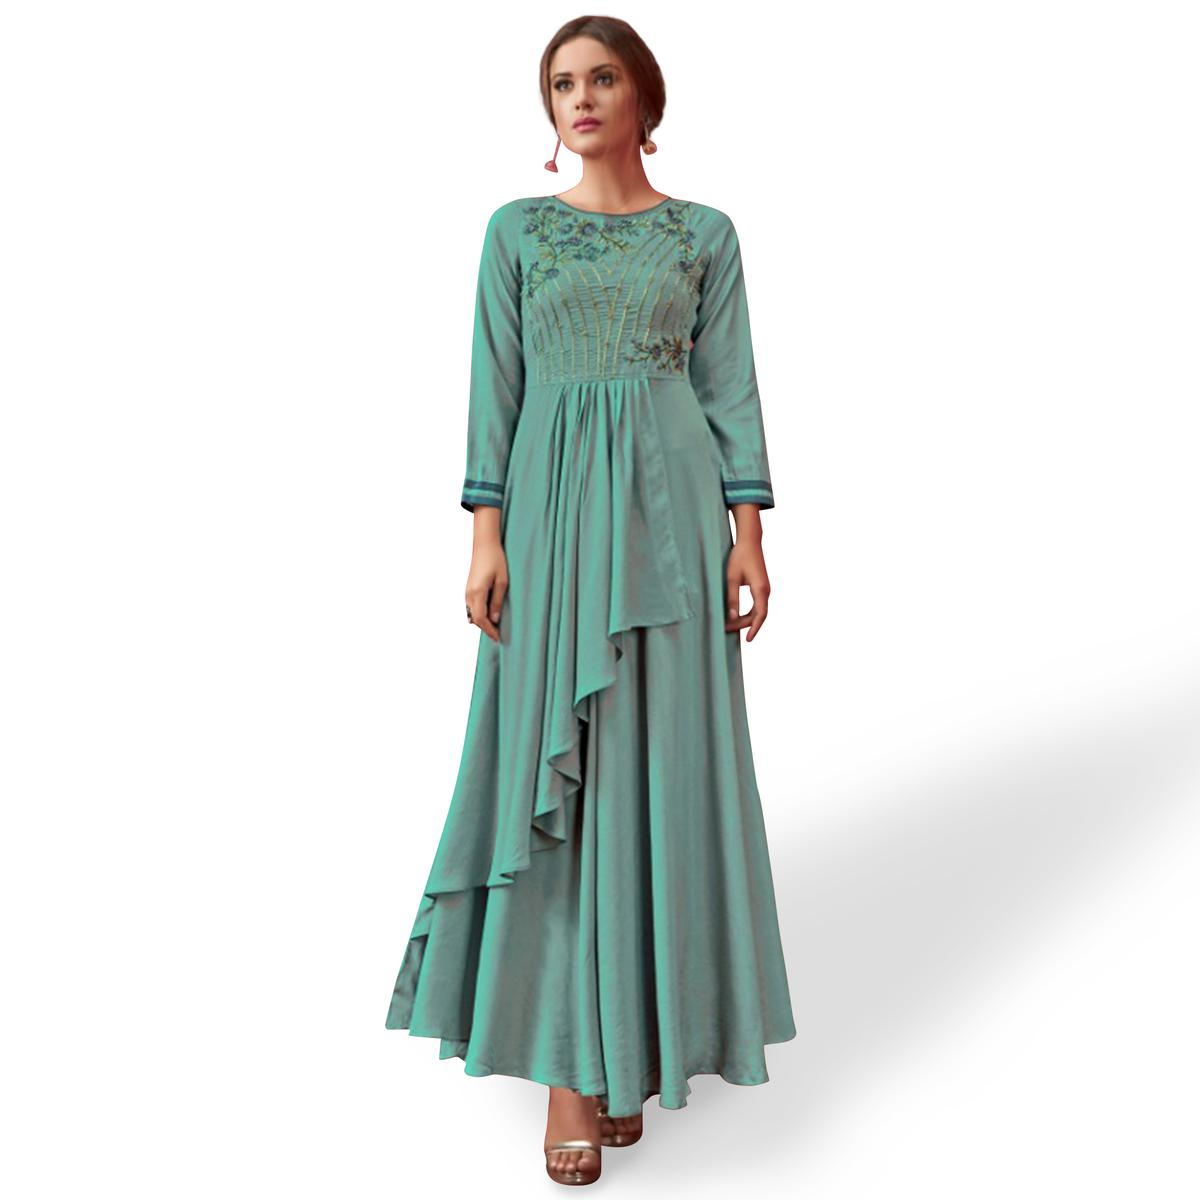 Groovy Turquoise Blue Colored Party Wear Embroidered Pure Cotton Gown